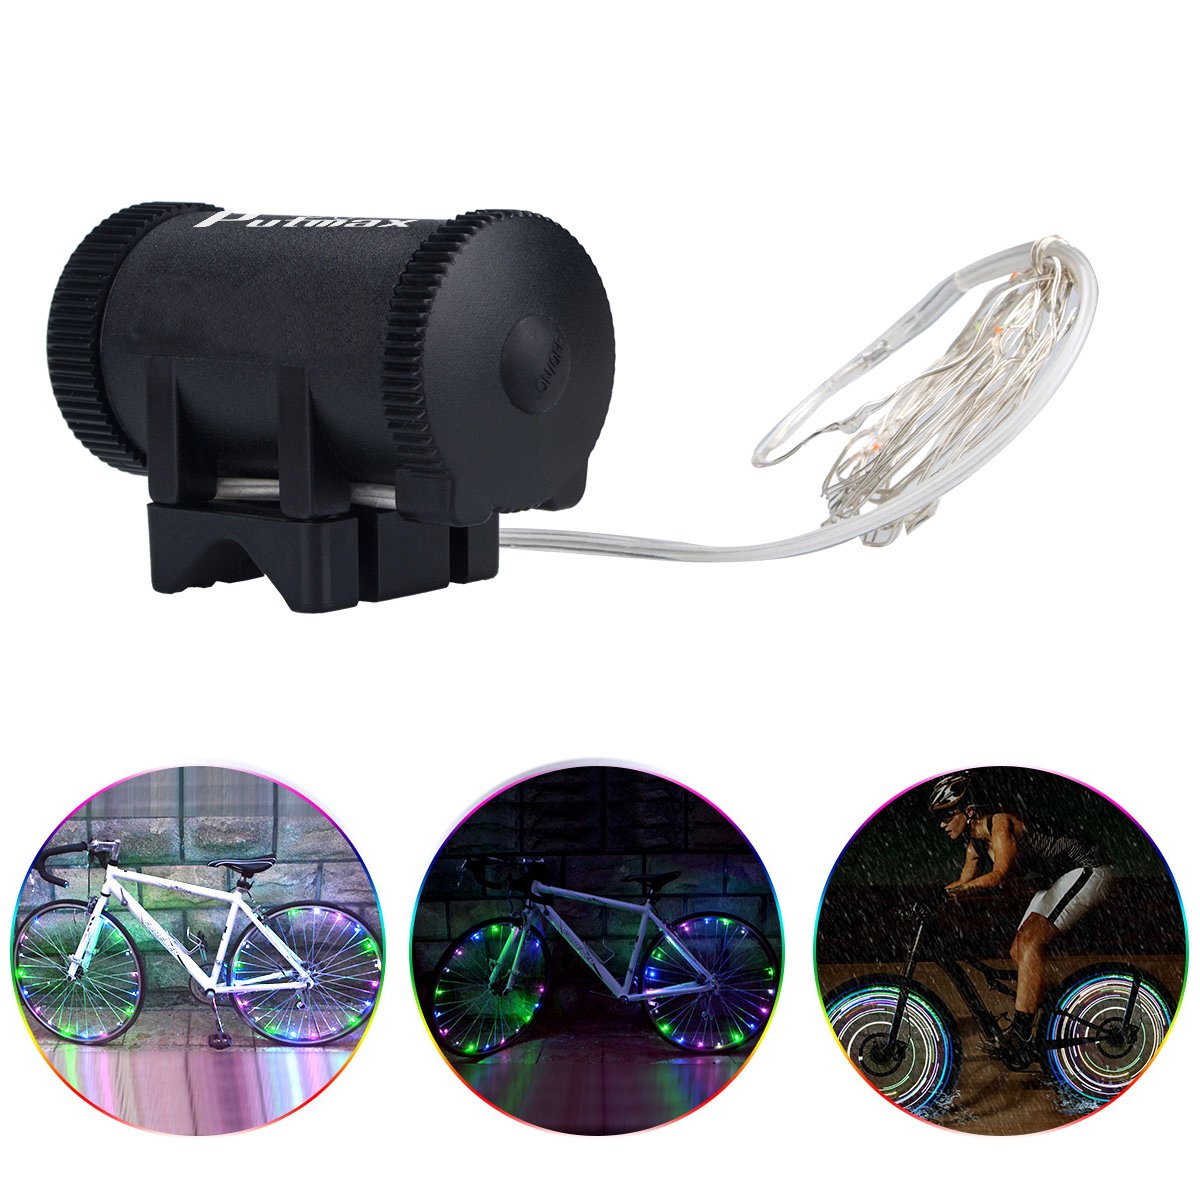 Putmax with Bike Wheel Lights - Bike Lights with Motion and Light Sensor-Safety Tire Light for Kids Adult Riding at Night